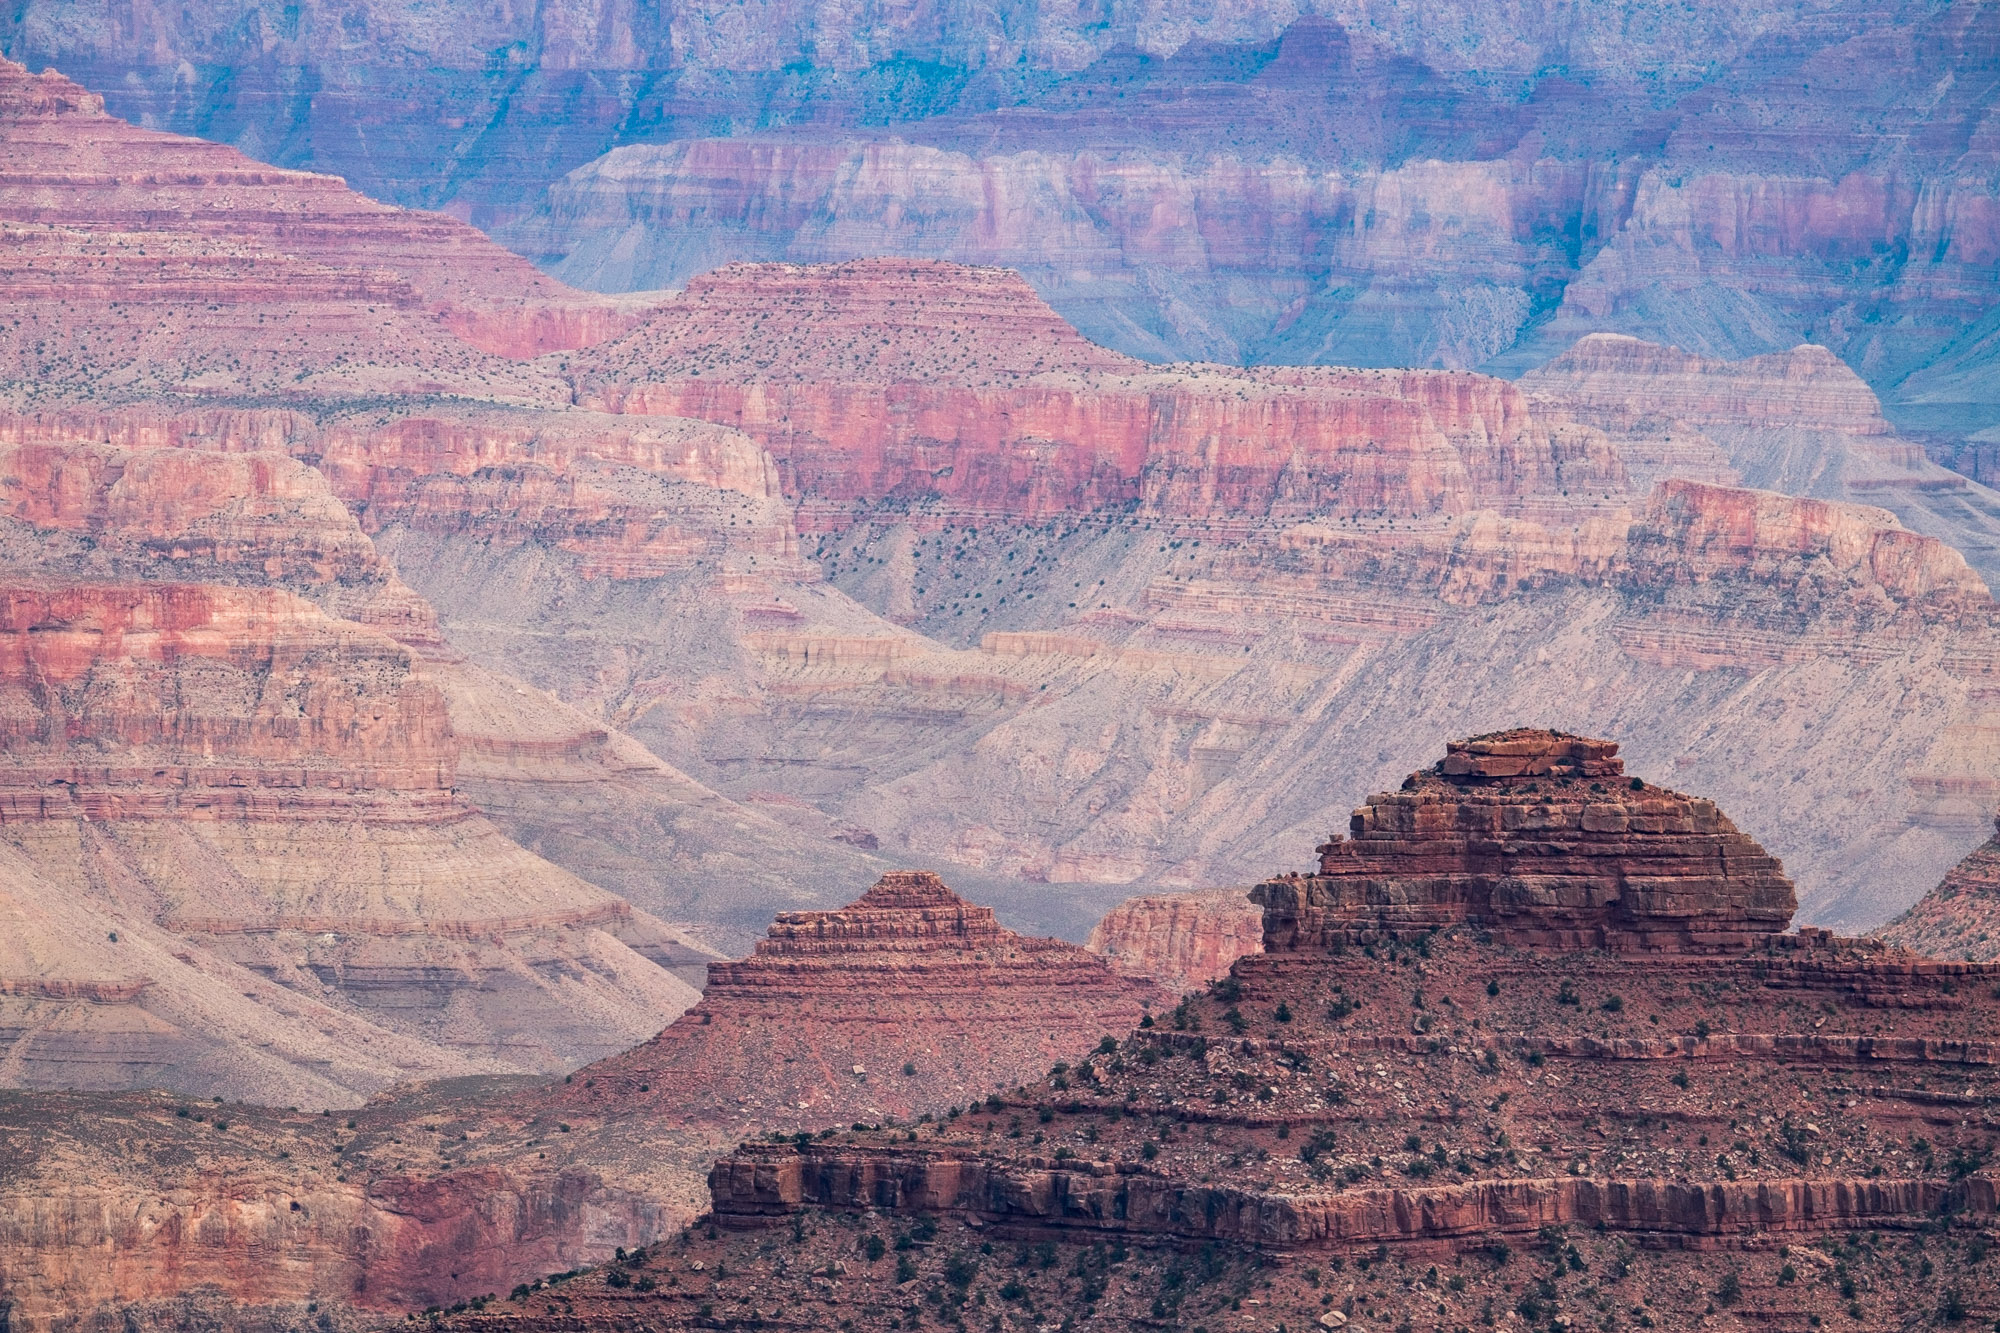 The canyon is made up of many, many layers....all visible from the rim.